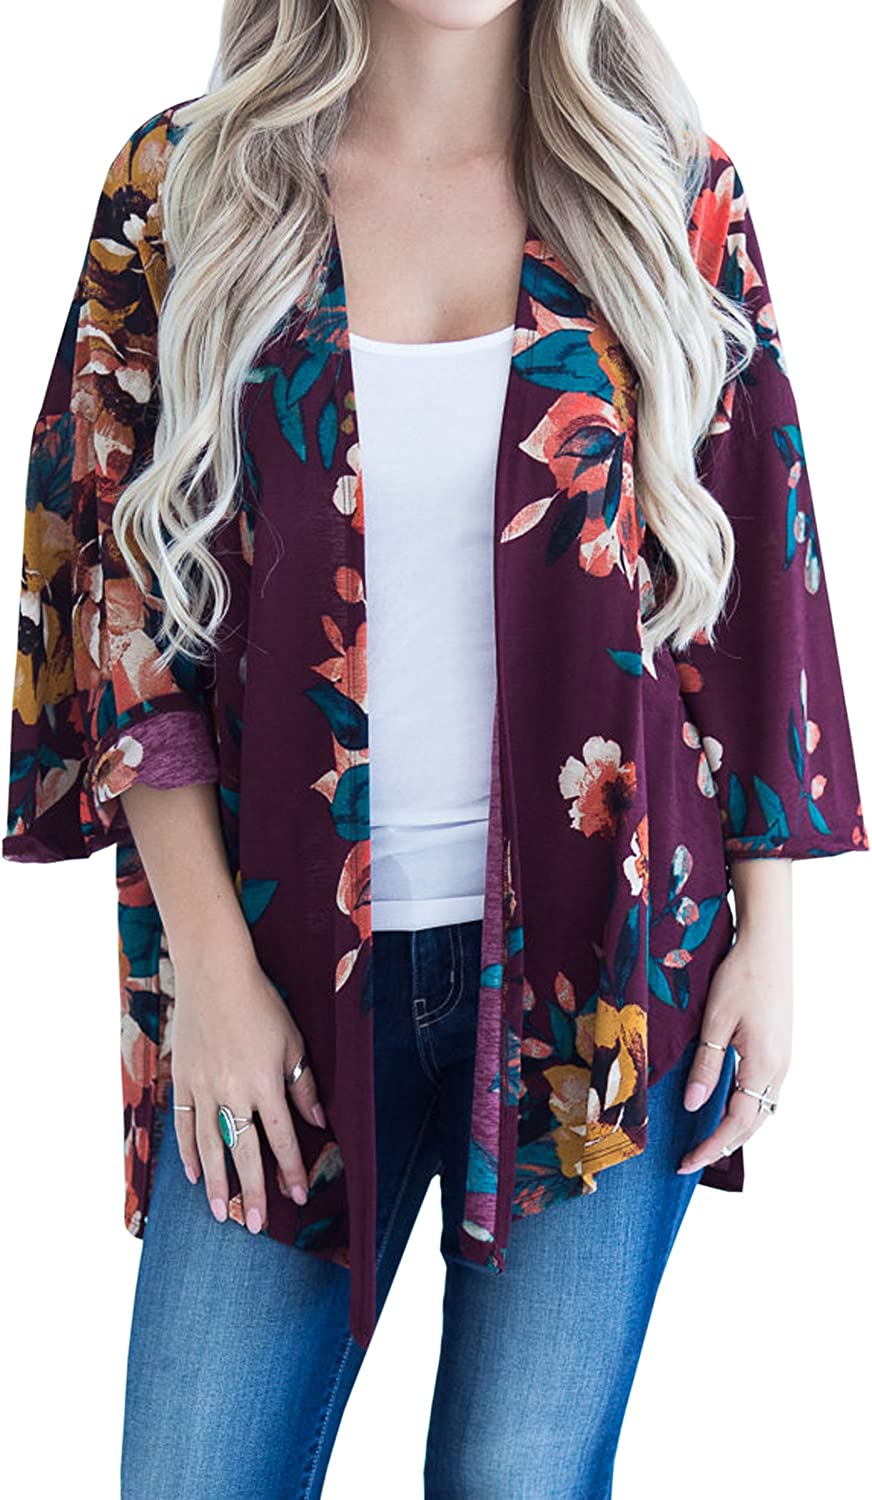 Hiblueco Women's Fashion Long Sleeve Floral Printed Open Cardigan Jacket Outwear